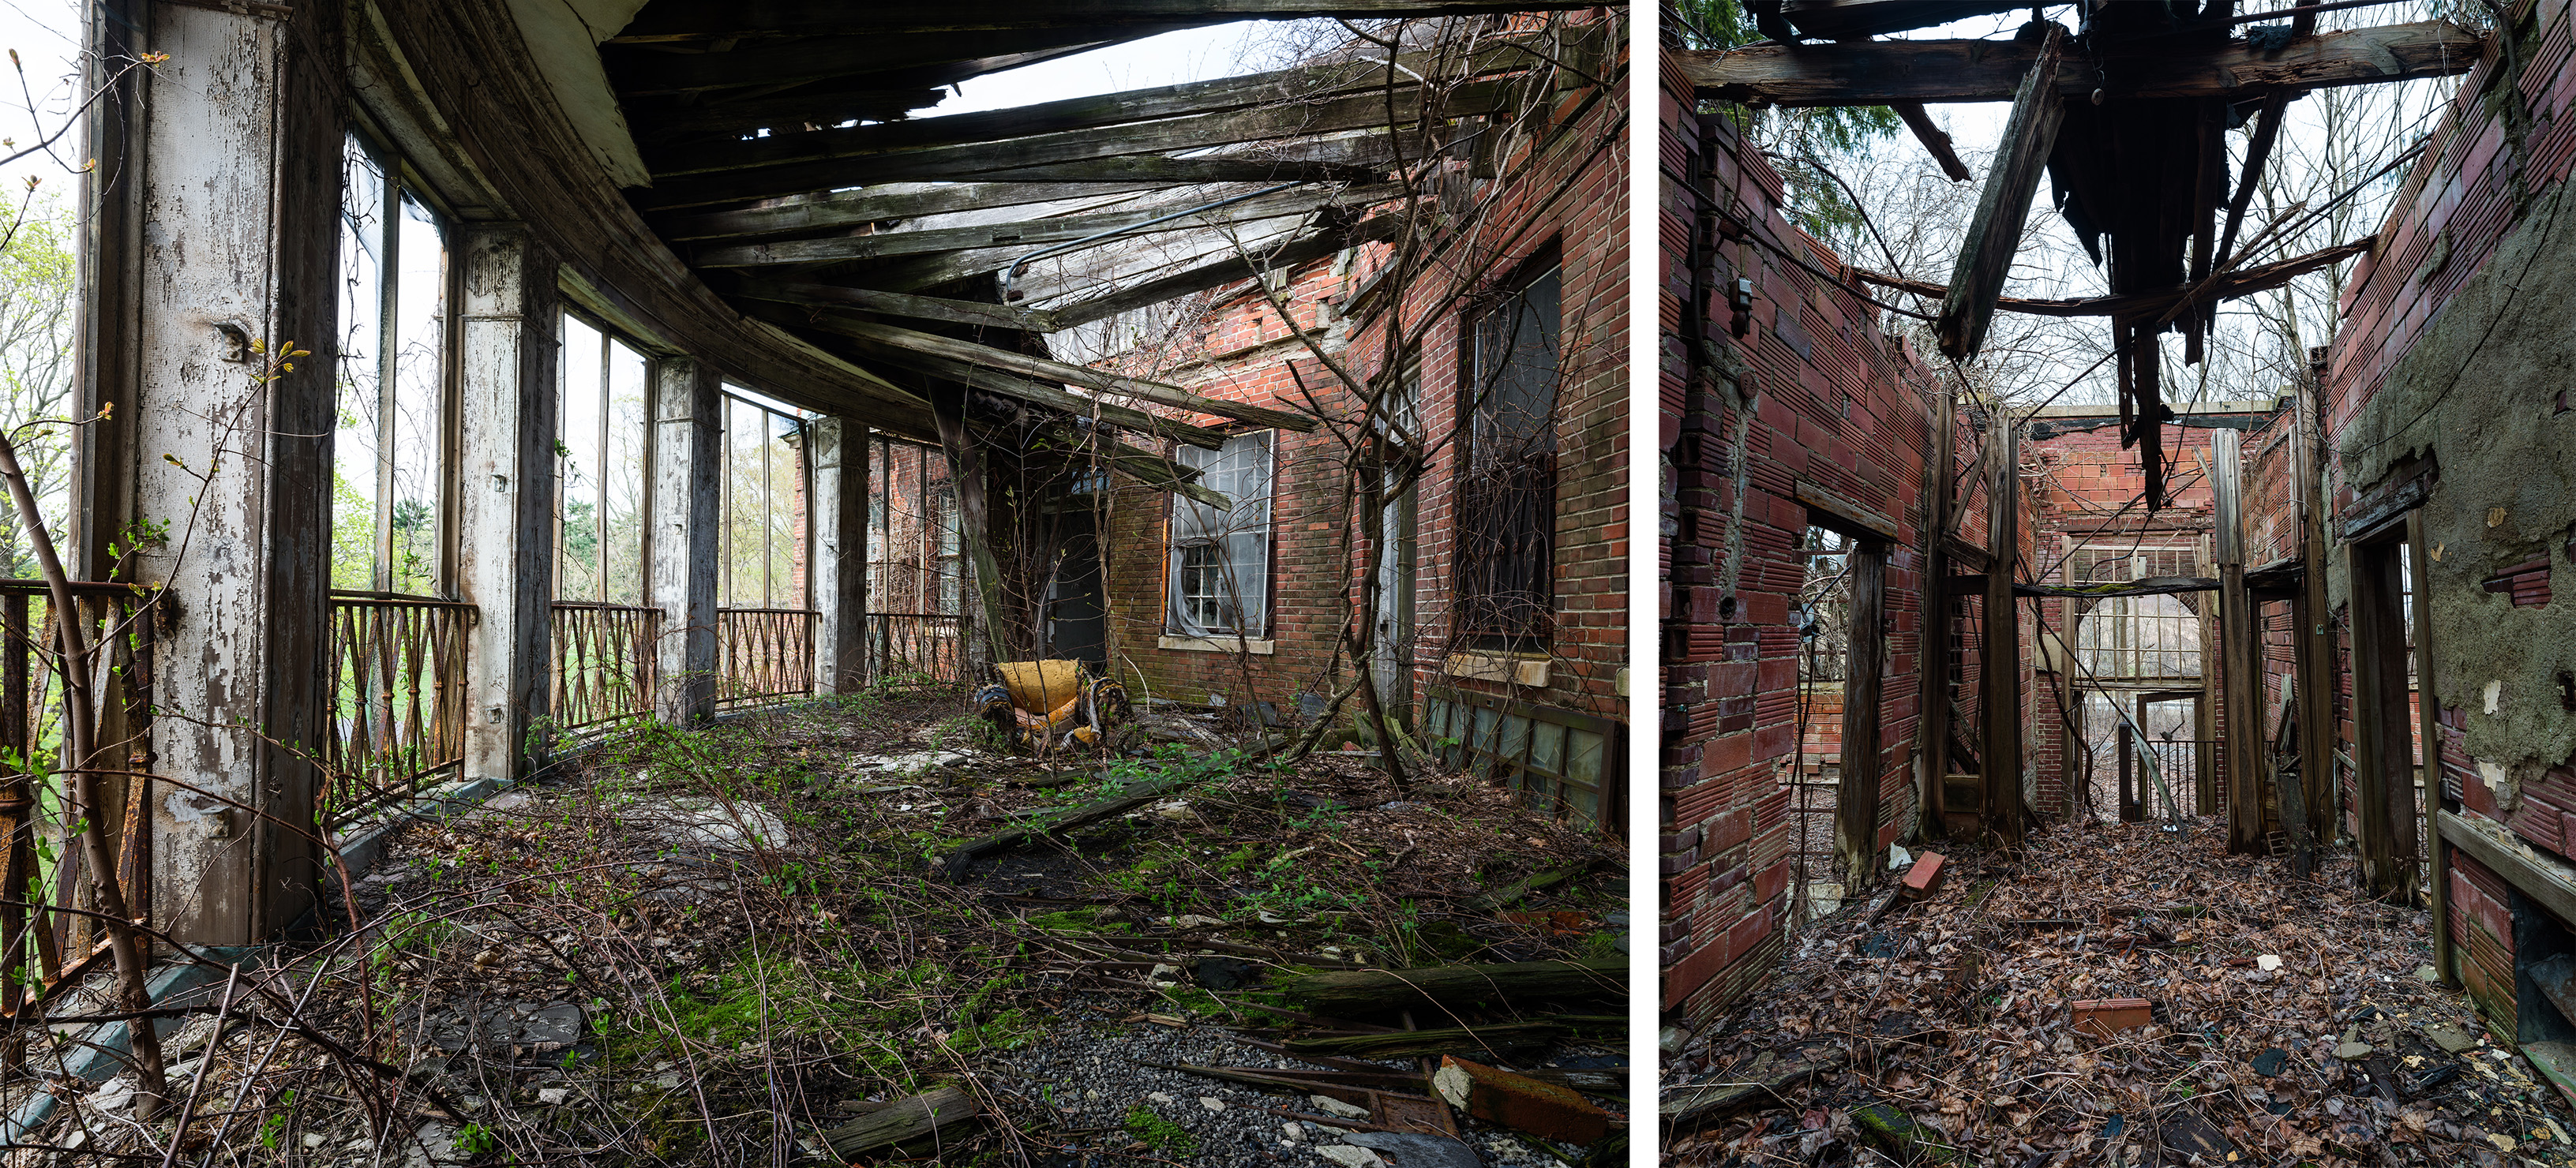 Urbex Landscape Fine Art Pittsburgh Photographer